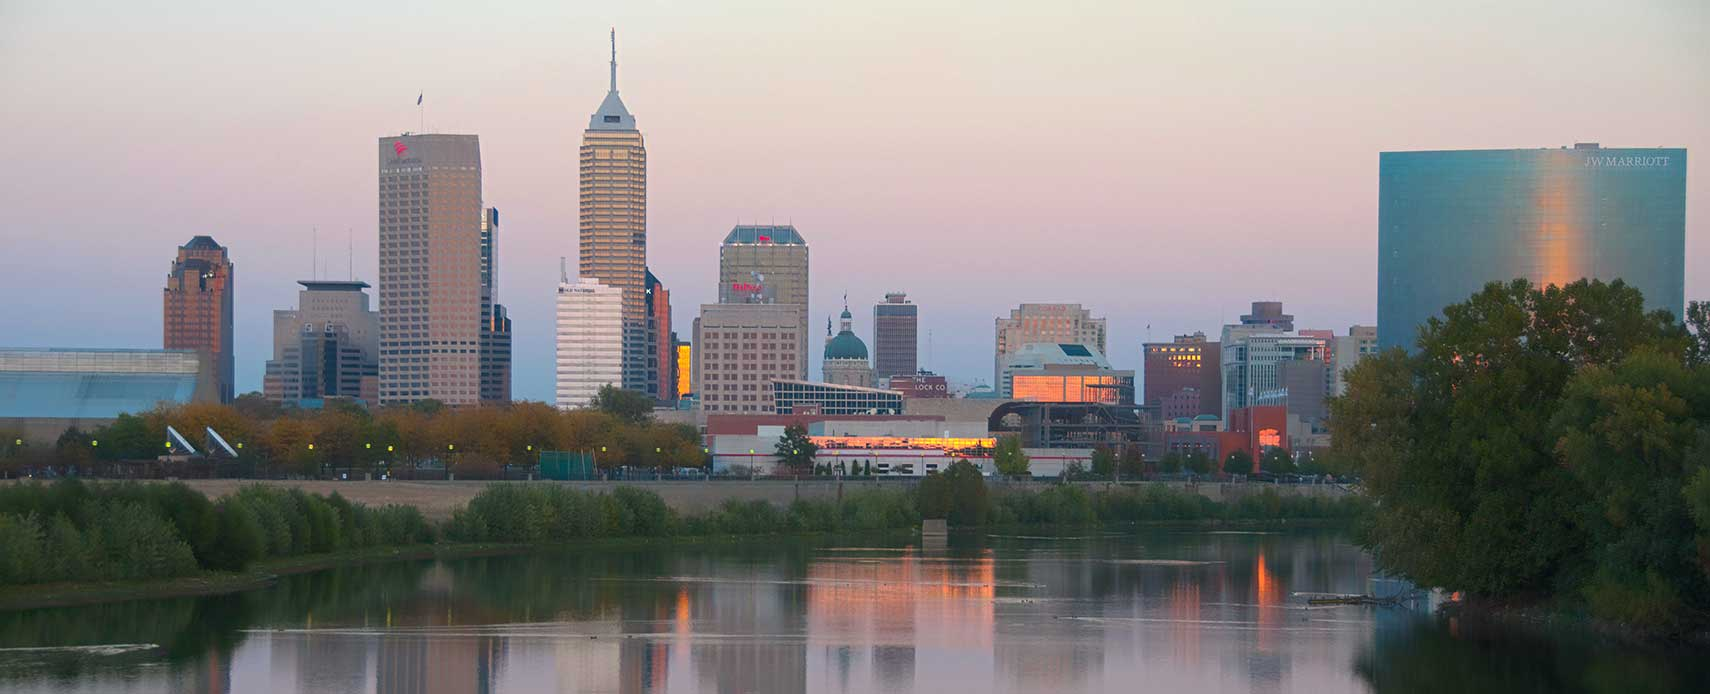 Google Map of Indianapolis, Indiana, USA - Nations Online Project